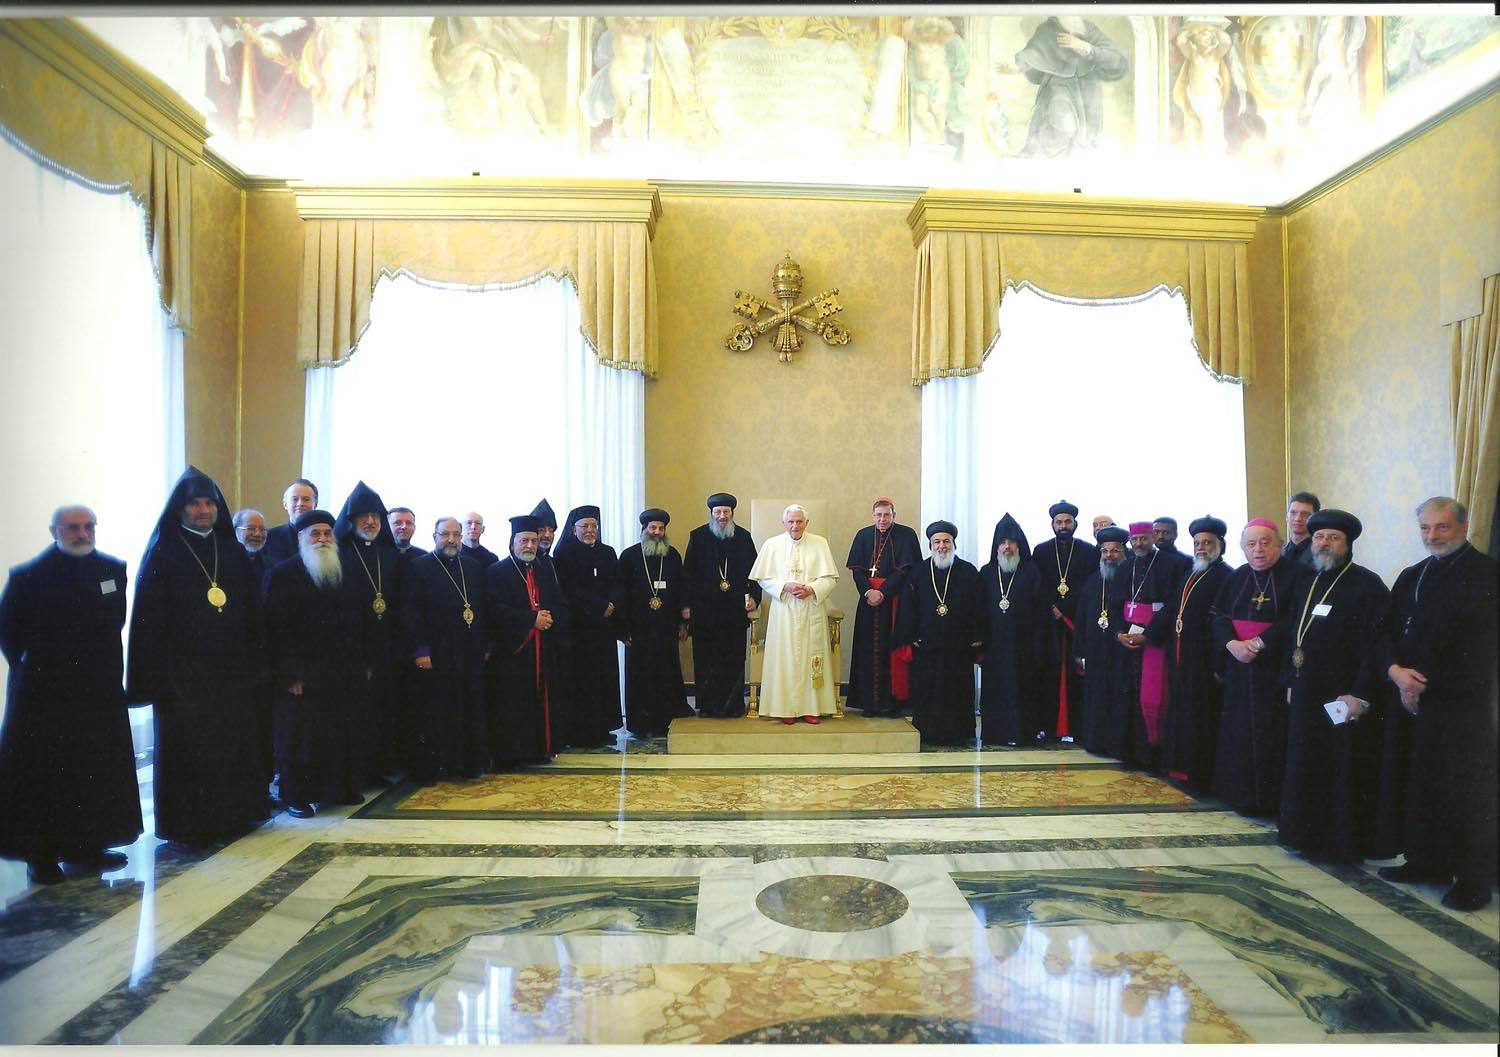 an analysis of the dialogues between the orthodox and roman catholic churches The research is based on the writing of the saints of the two churches  based  on the writing of the saints of the two churches, as well as on the analysis  provided  the dialogue between the eastern orthodox and roman catholic  churches.